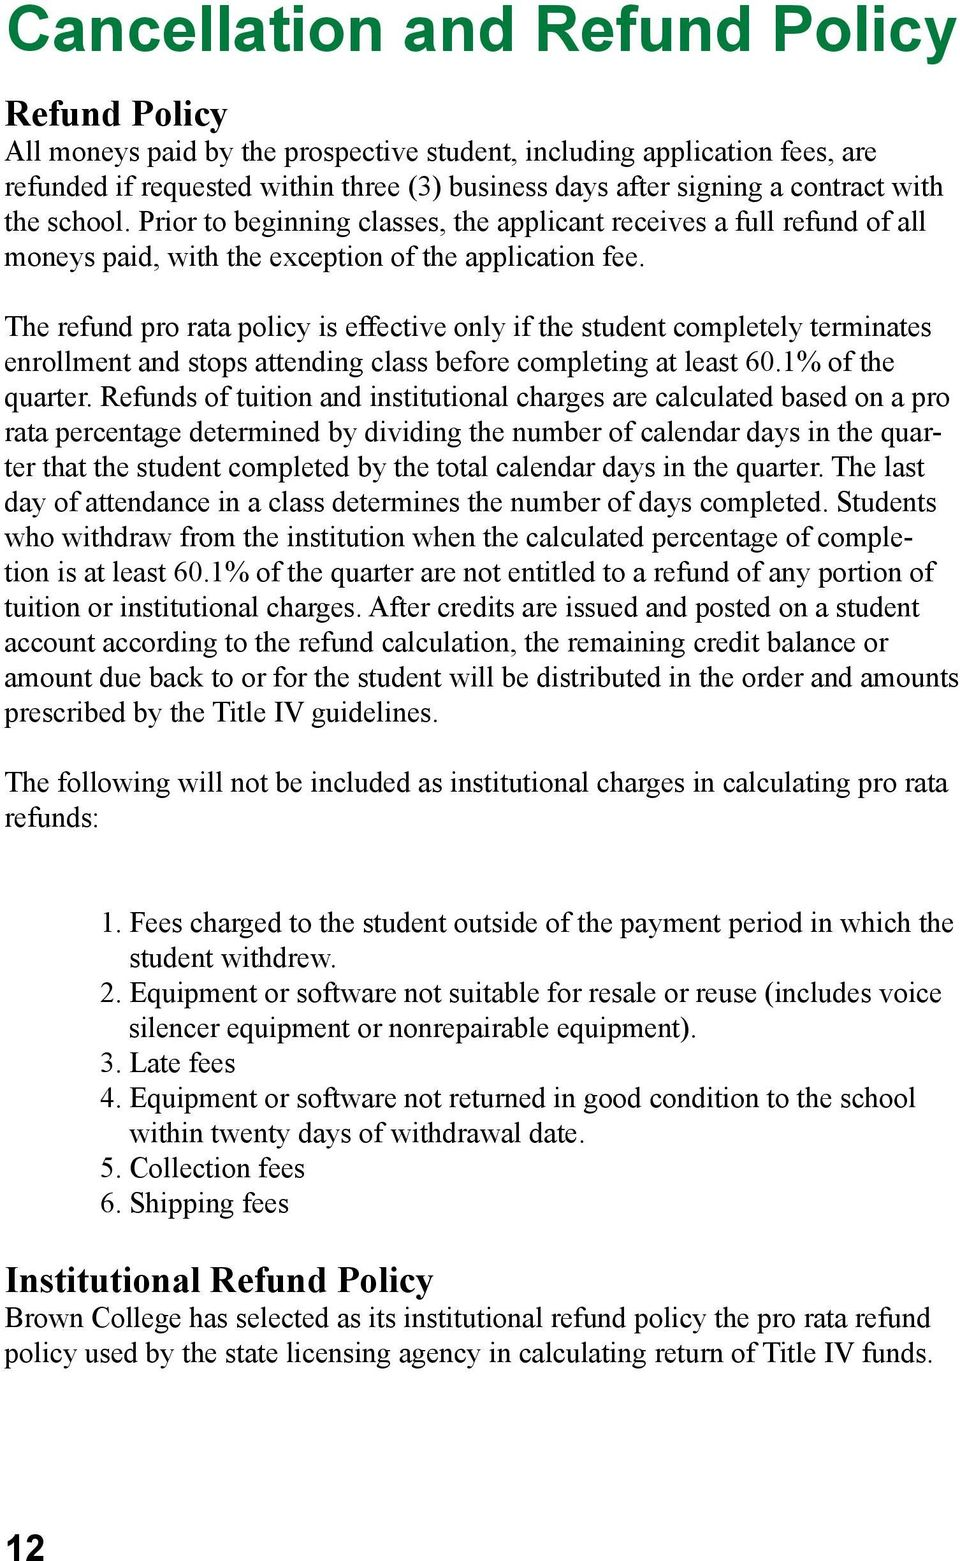 The refund pro rata policy is effective only if the student completely terminates enrollment and stops attending class before completing at least 60.1% of the quarter.